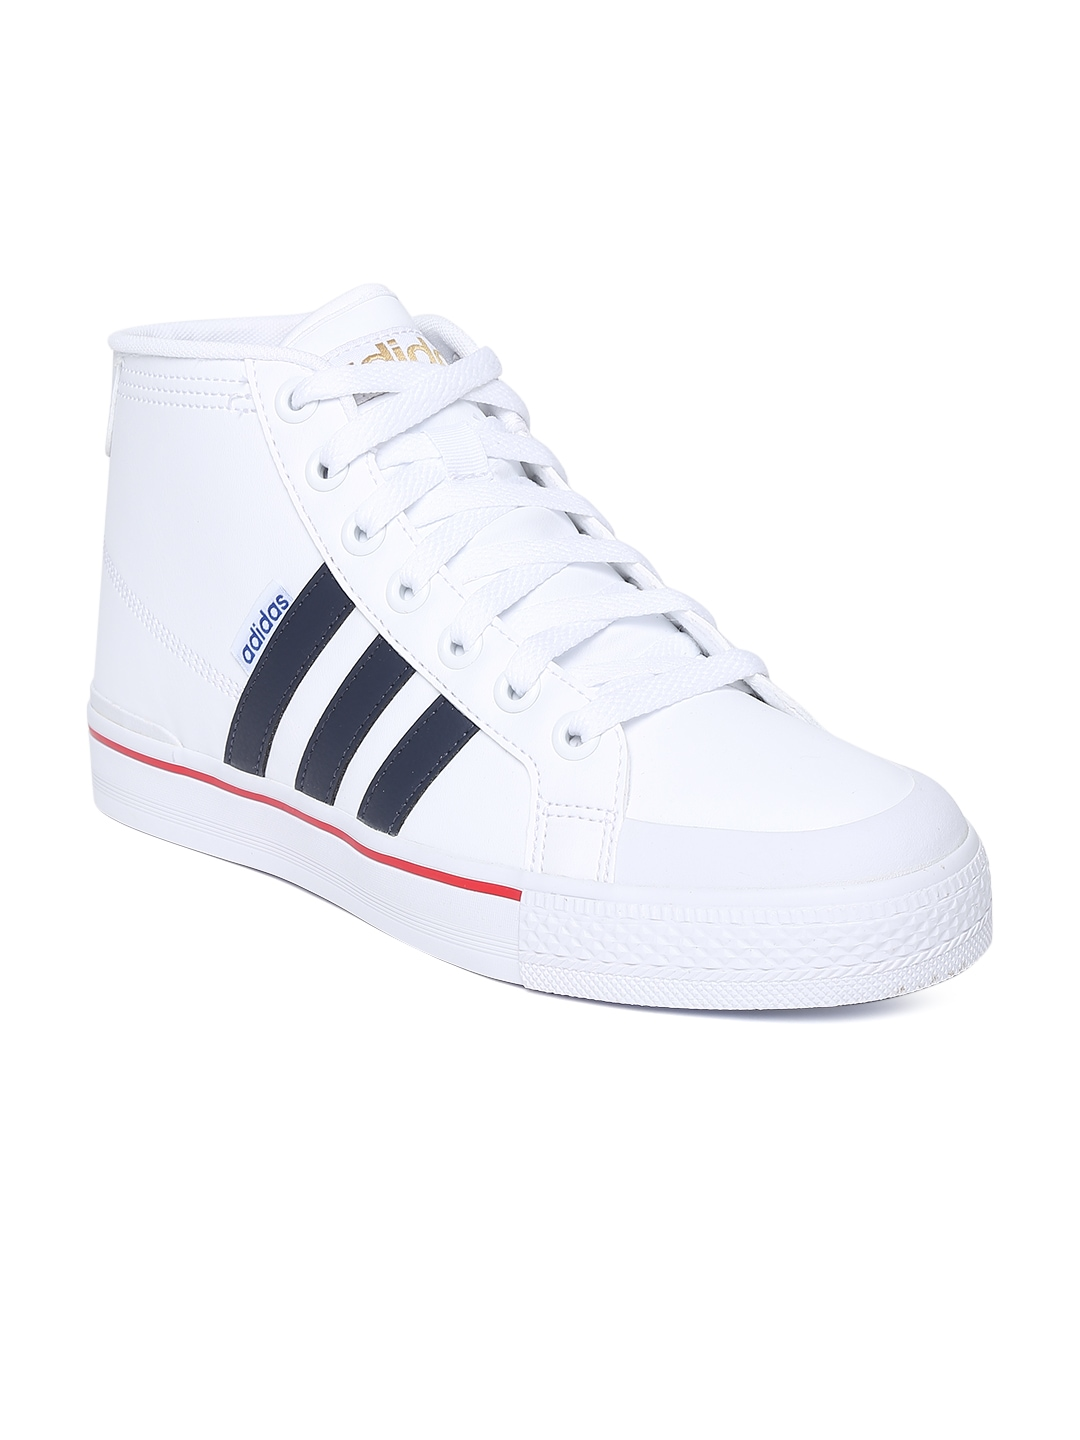 Adidas Shoes For Men Casual Neo